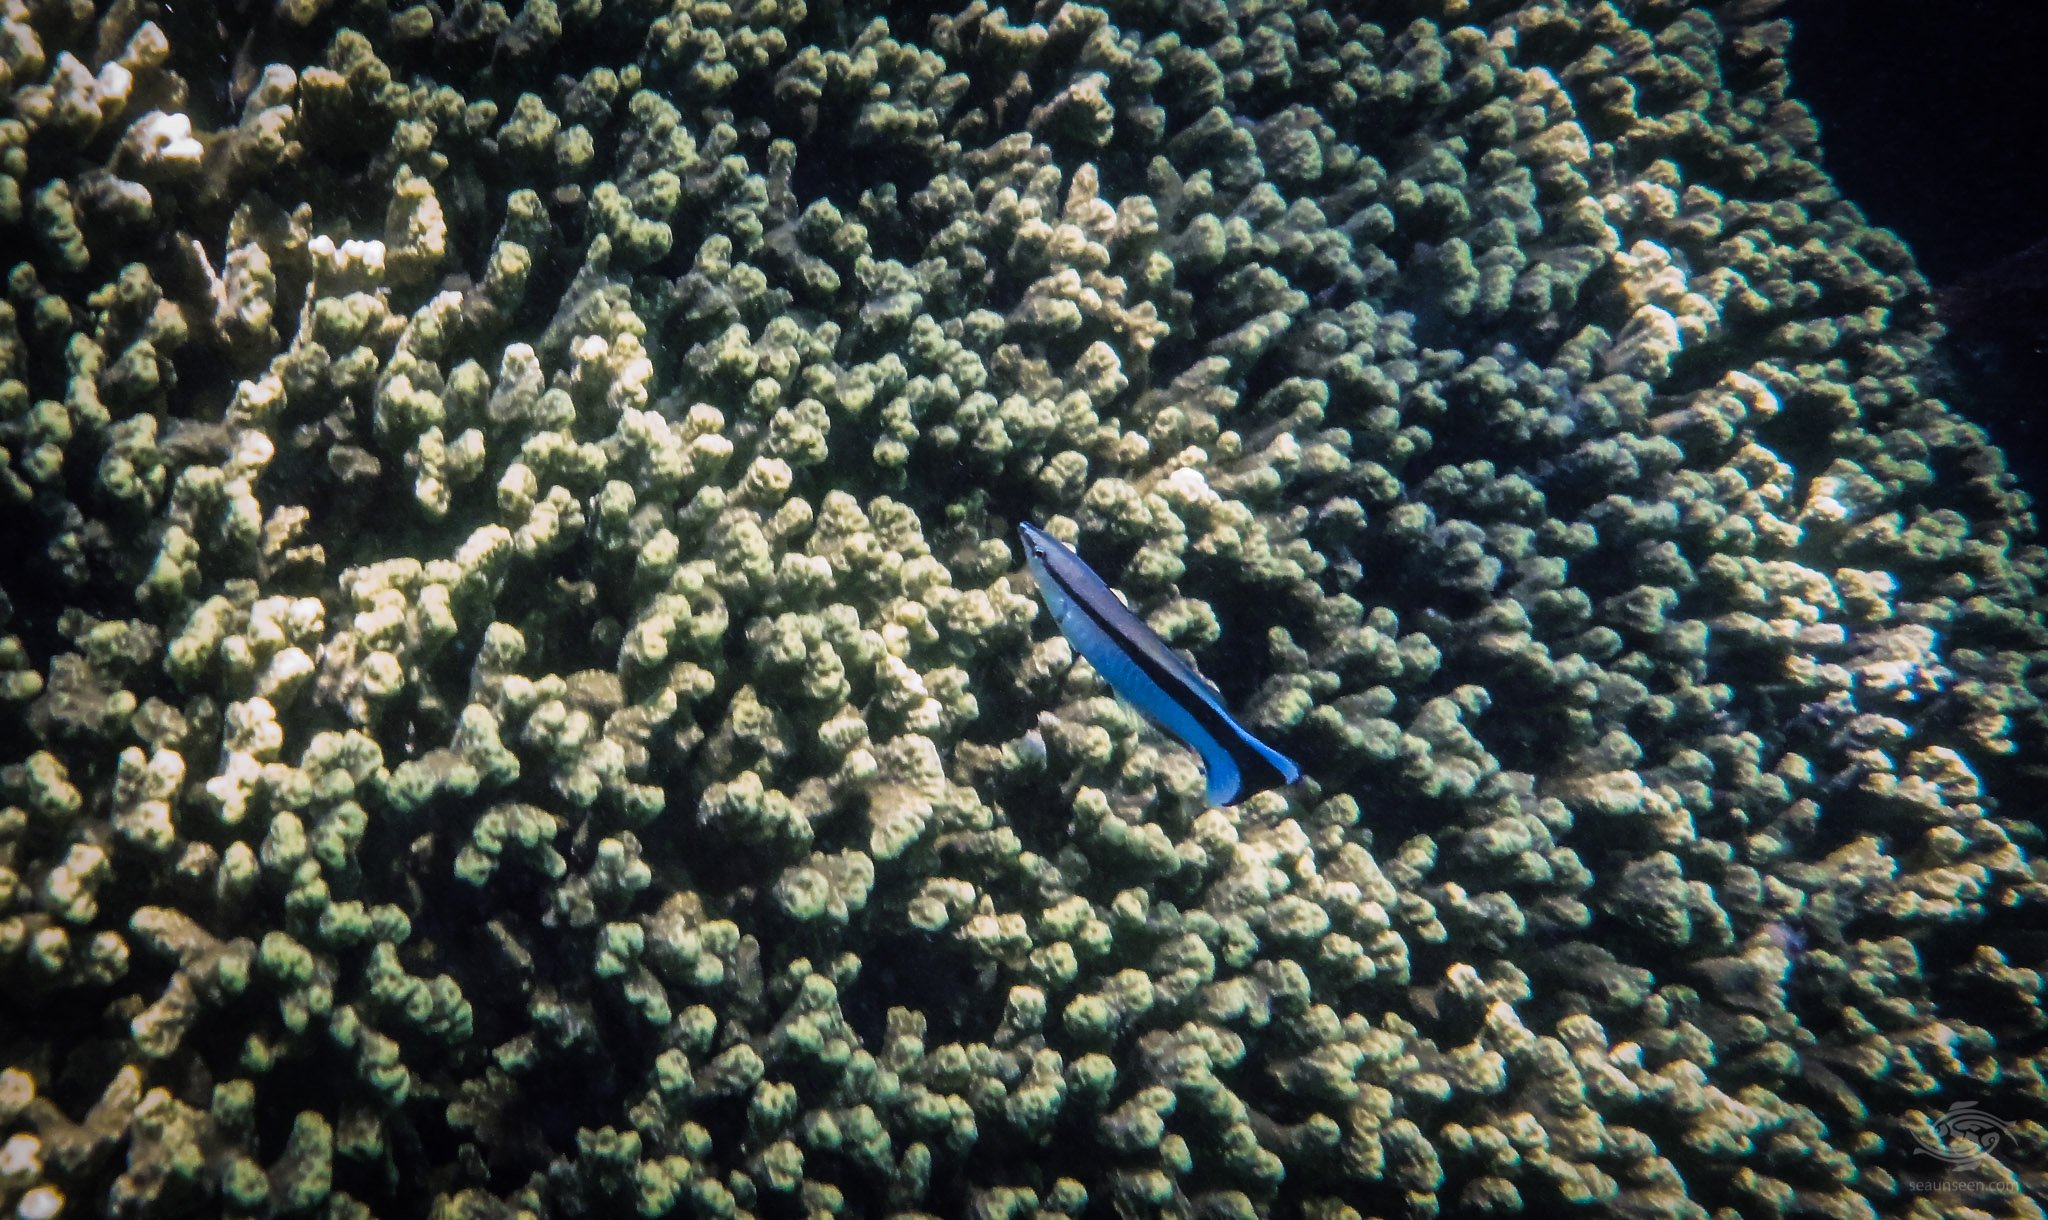 Cleaner Wrasse (Labroides dimidiatus)